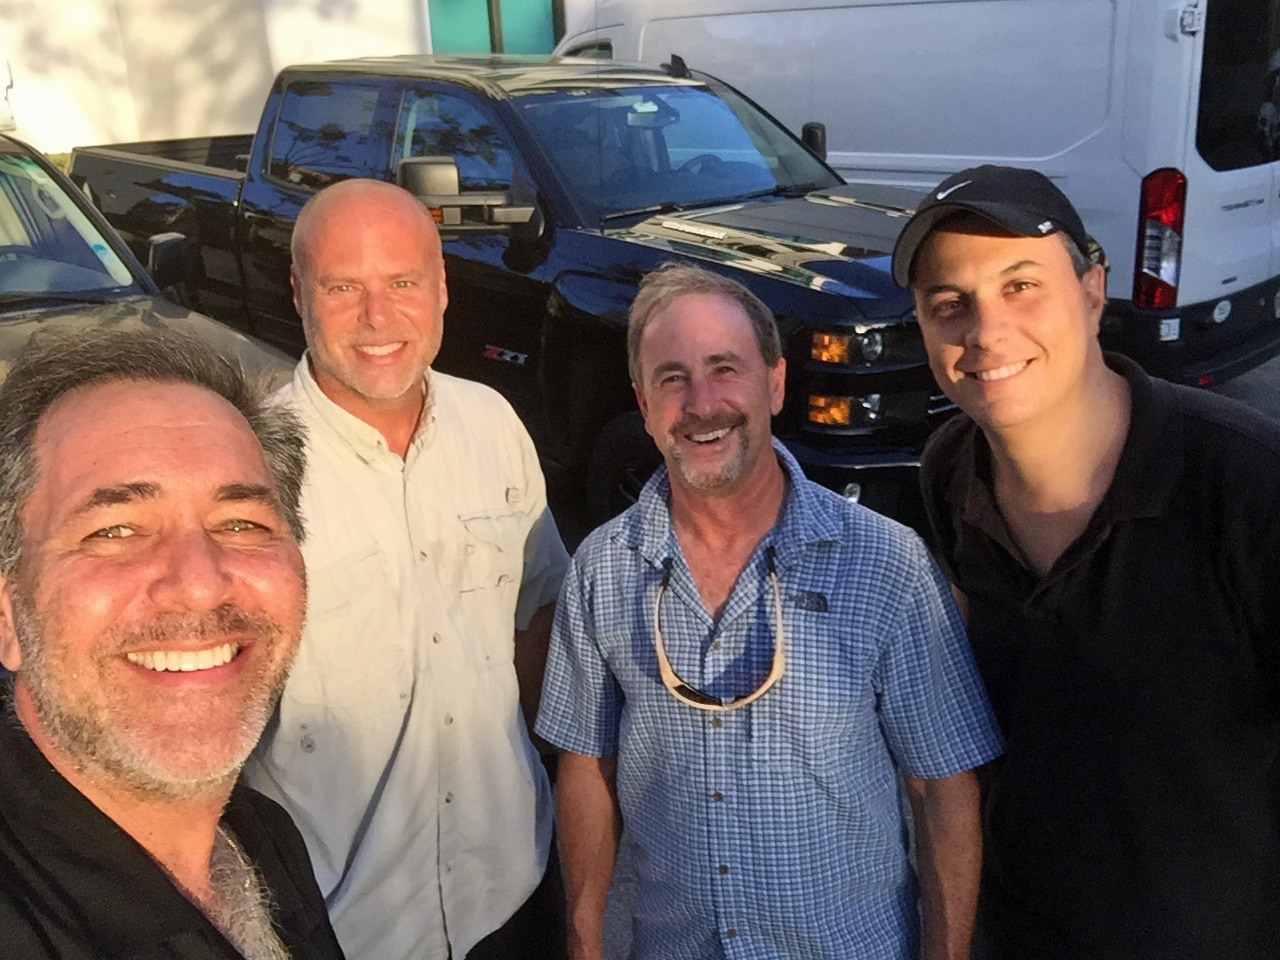 with longtime friends and colleagues Steve Weiss, Andy Cope and Michael Behar